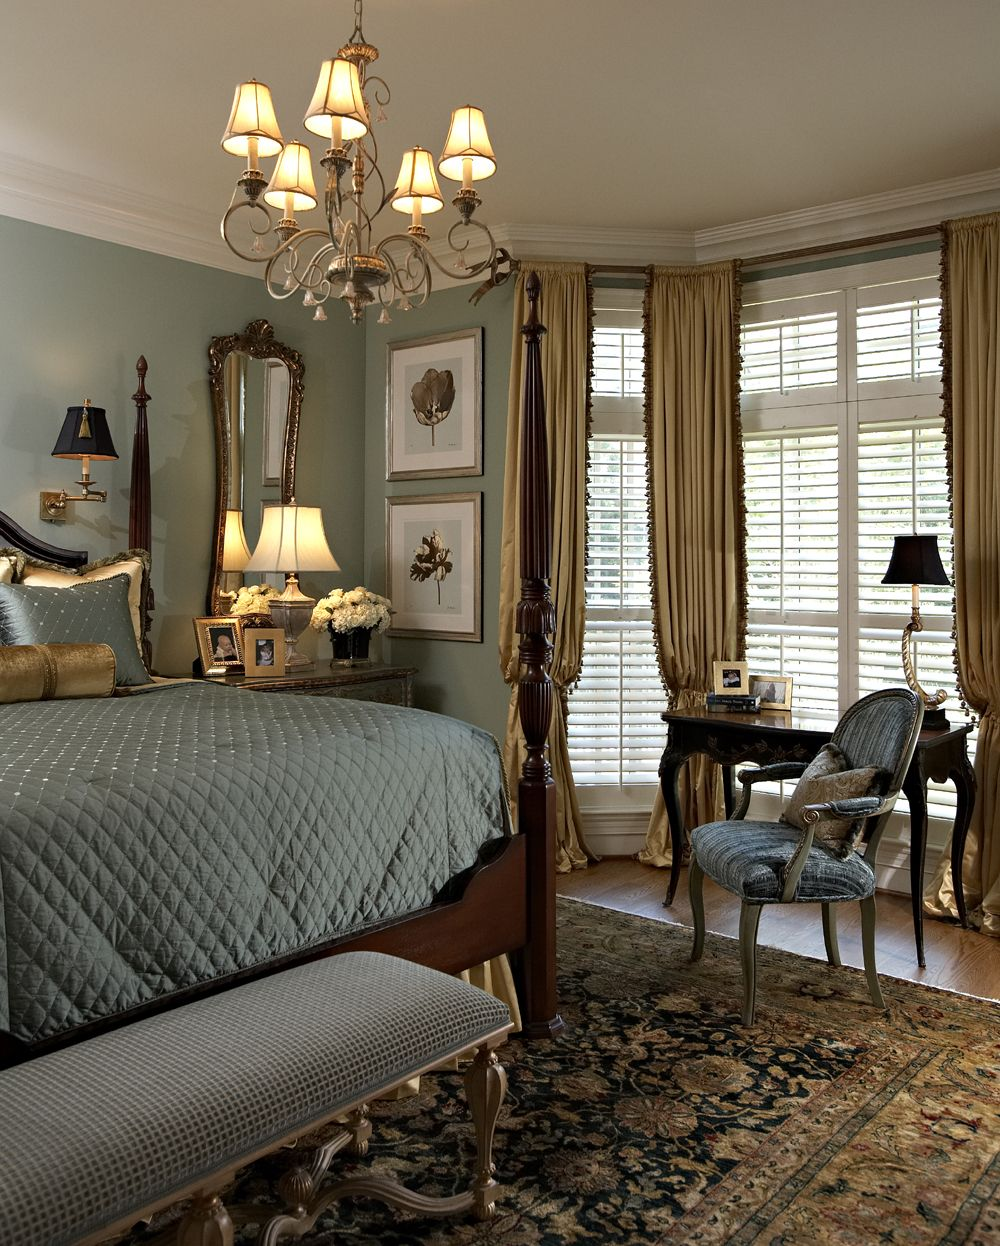 Small Bedroom Curtains Traditional Master Bedroom Interior Design Bedroom Decorating Ideas And Bedroom Furniture Bedroom Decor Stores: Gold And Blue. Love The Chandelier, The Wall Sconces, The